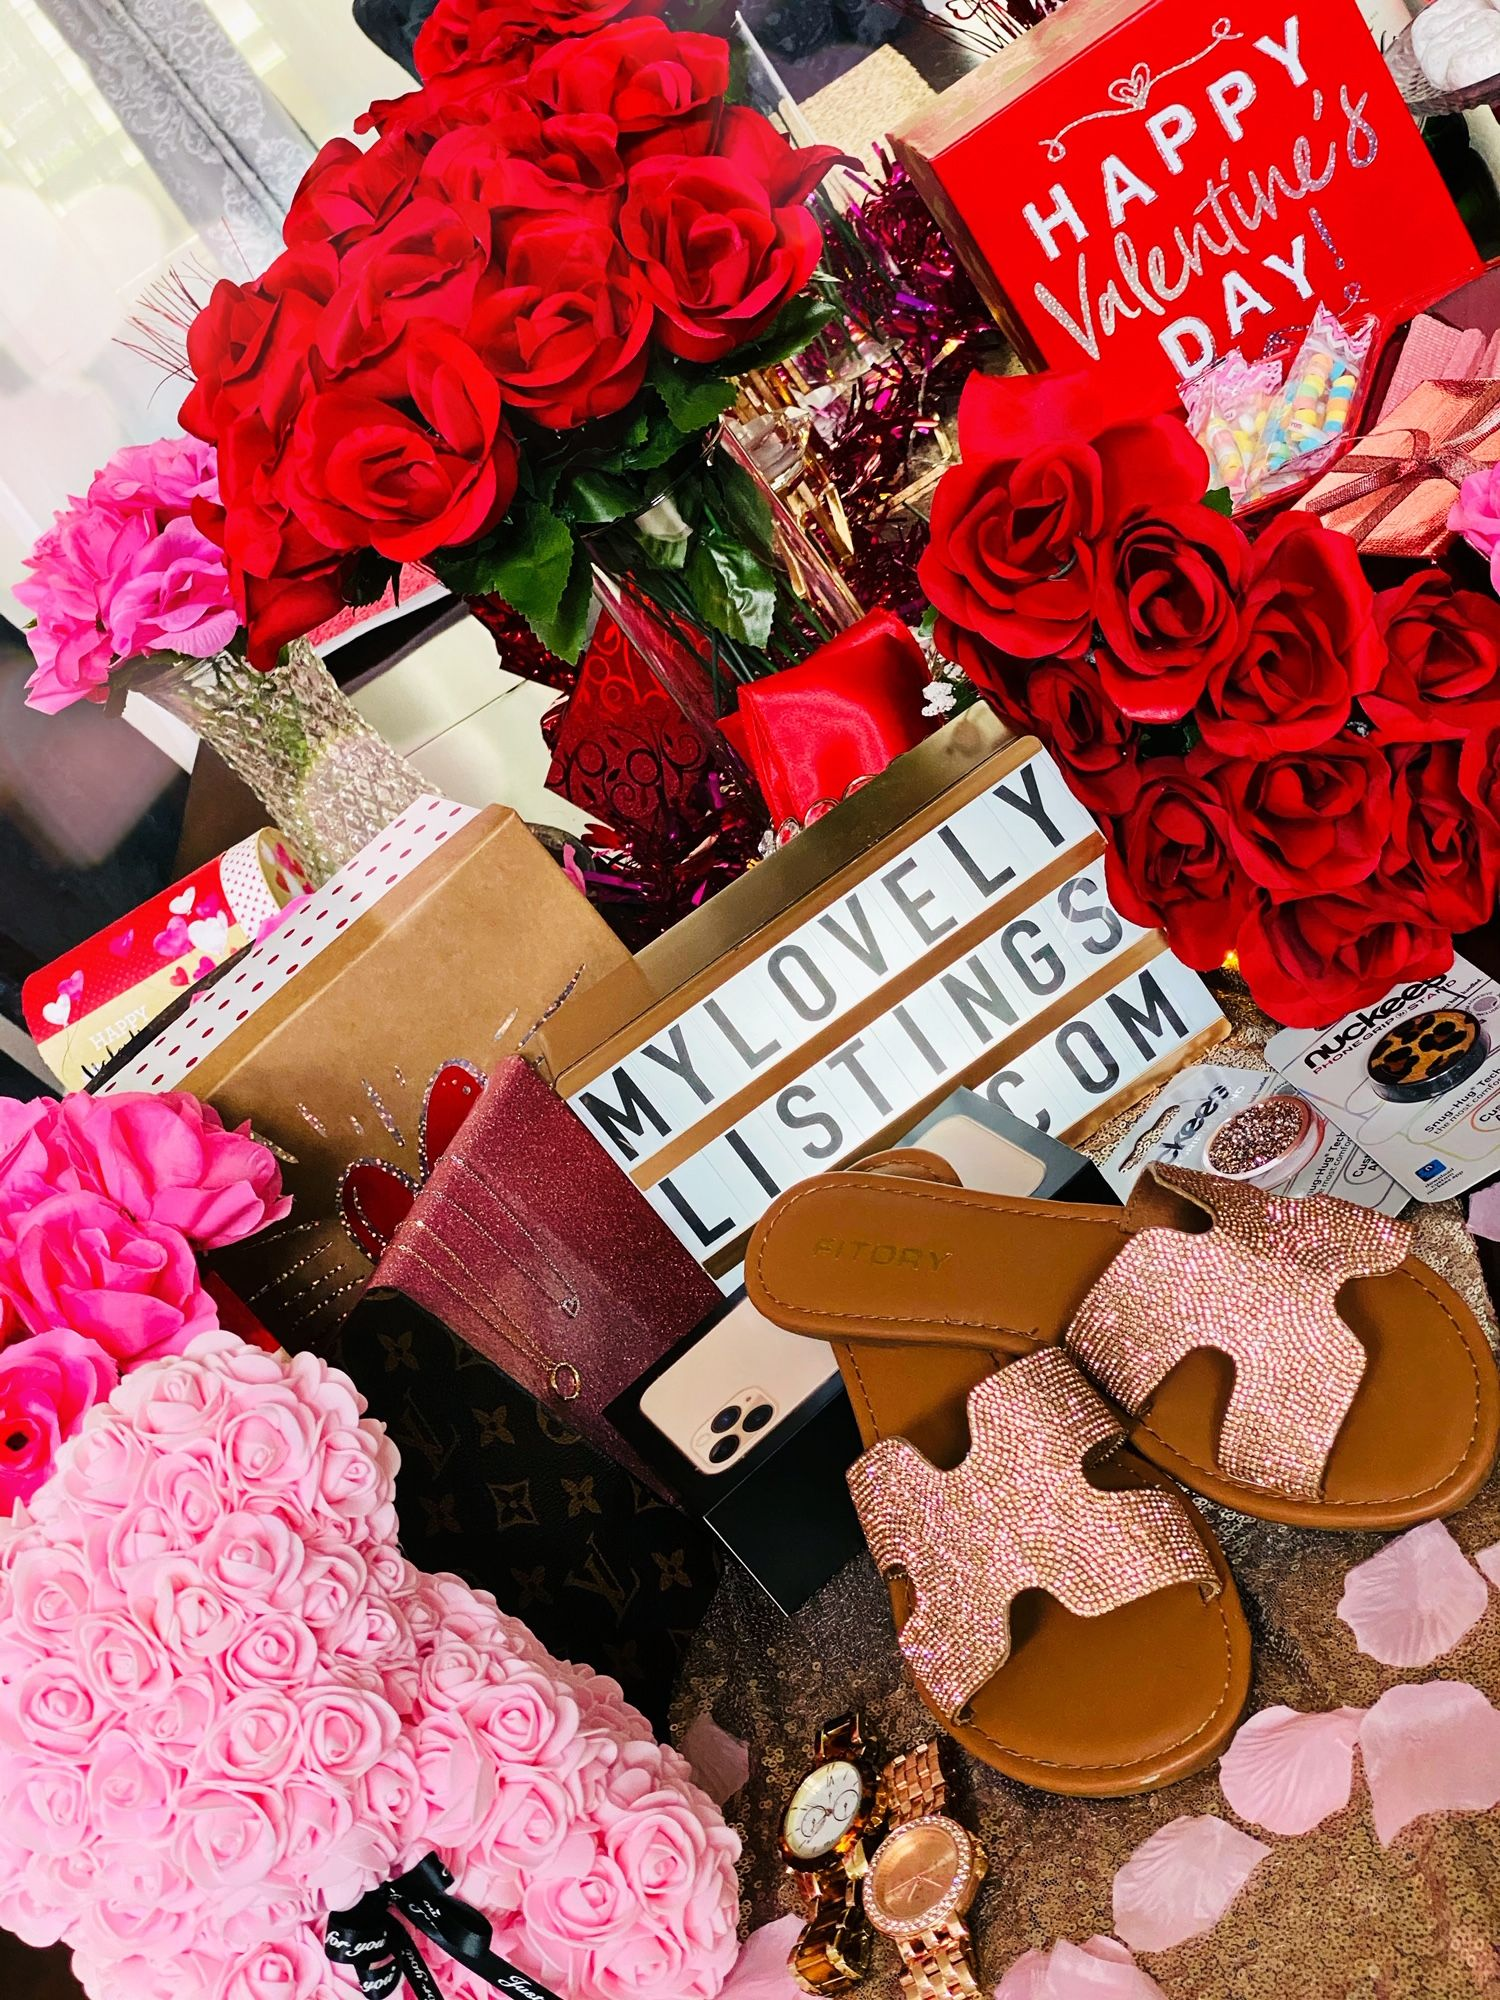 Affordable luxurious valentines day gifts under 30 in